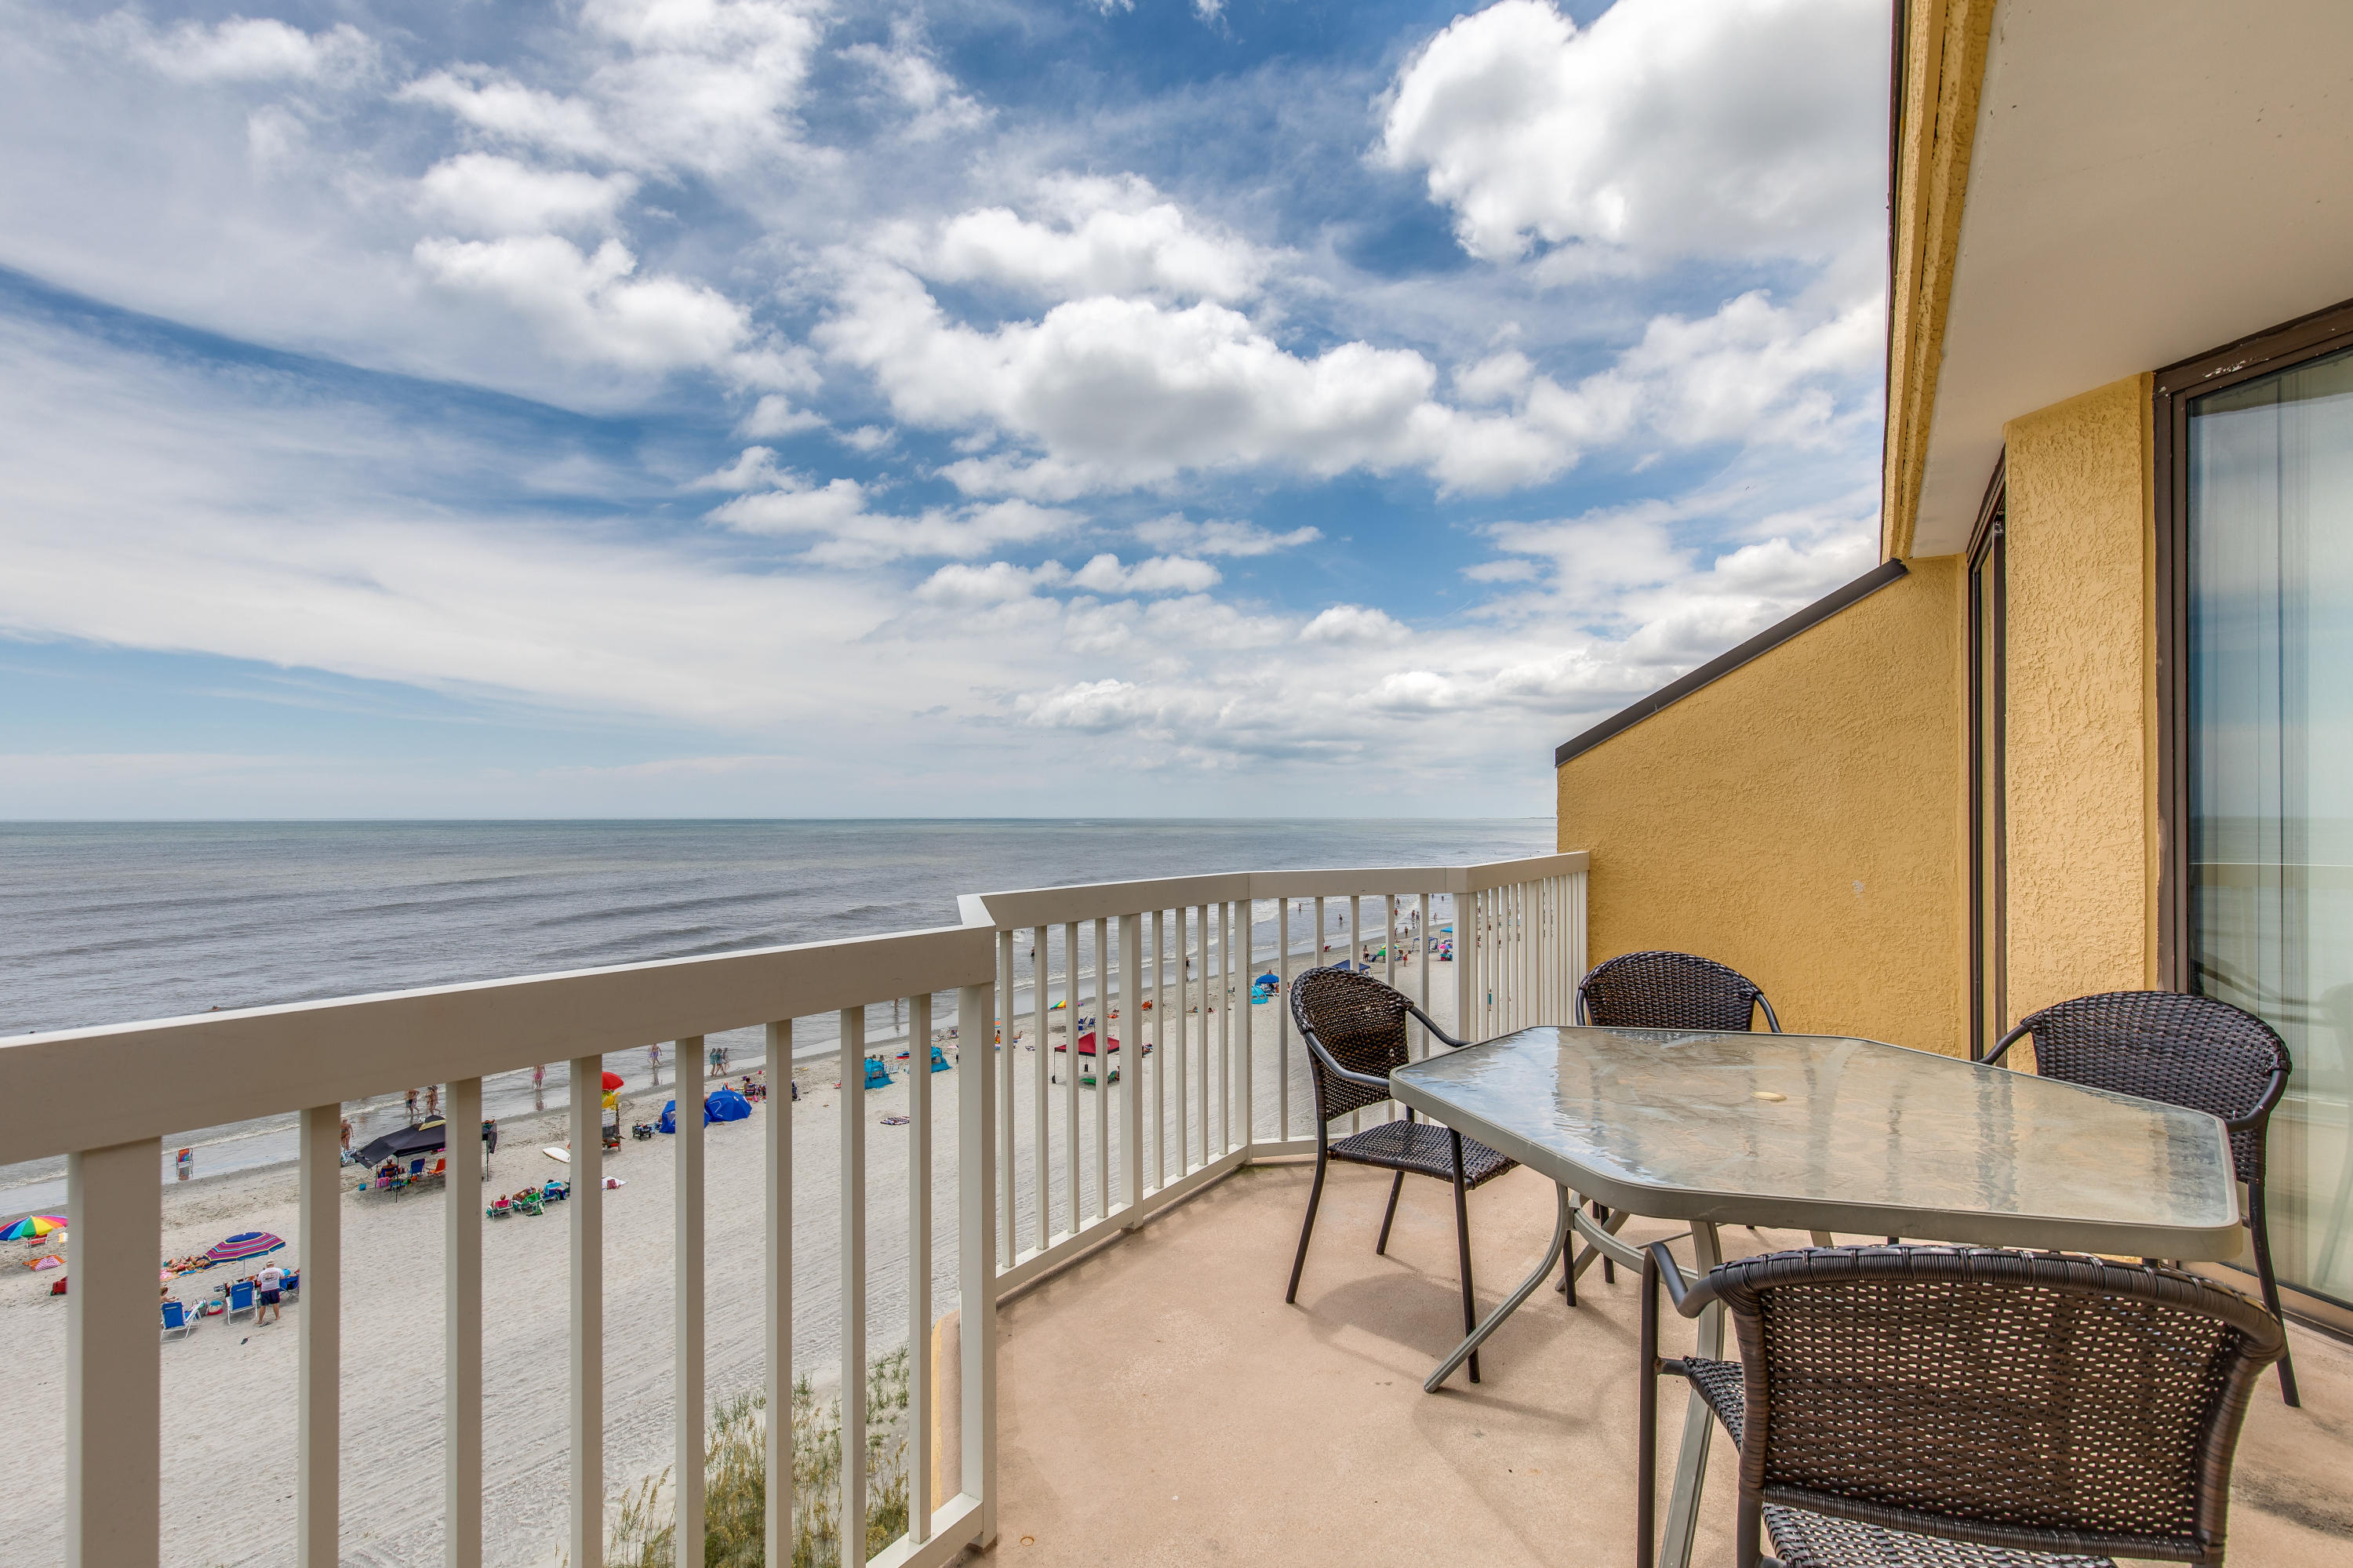 Charleston Oceanfront Villas Homes For Sale - 201 Arctic, Folly Beach, SC - 6